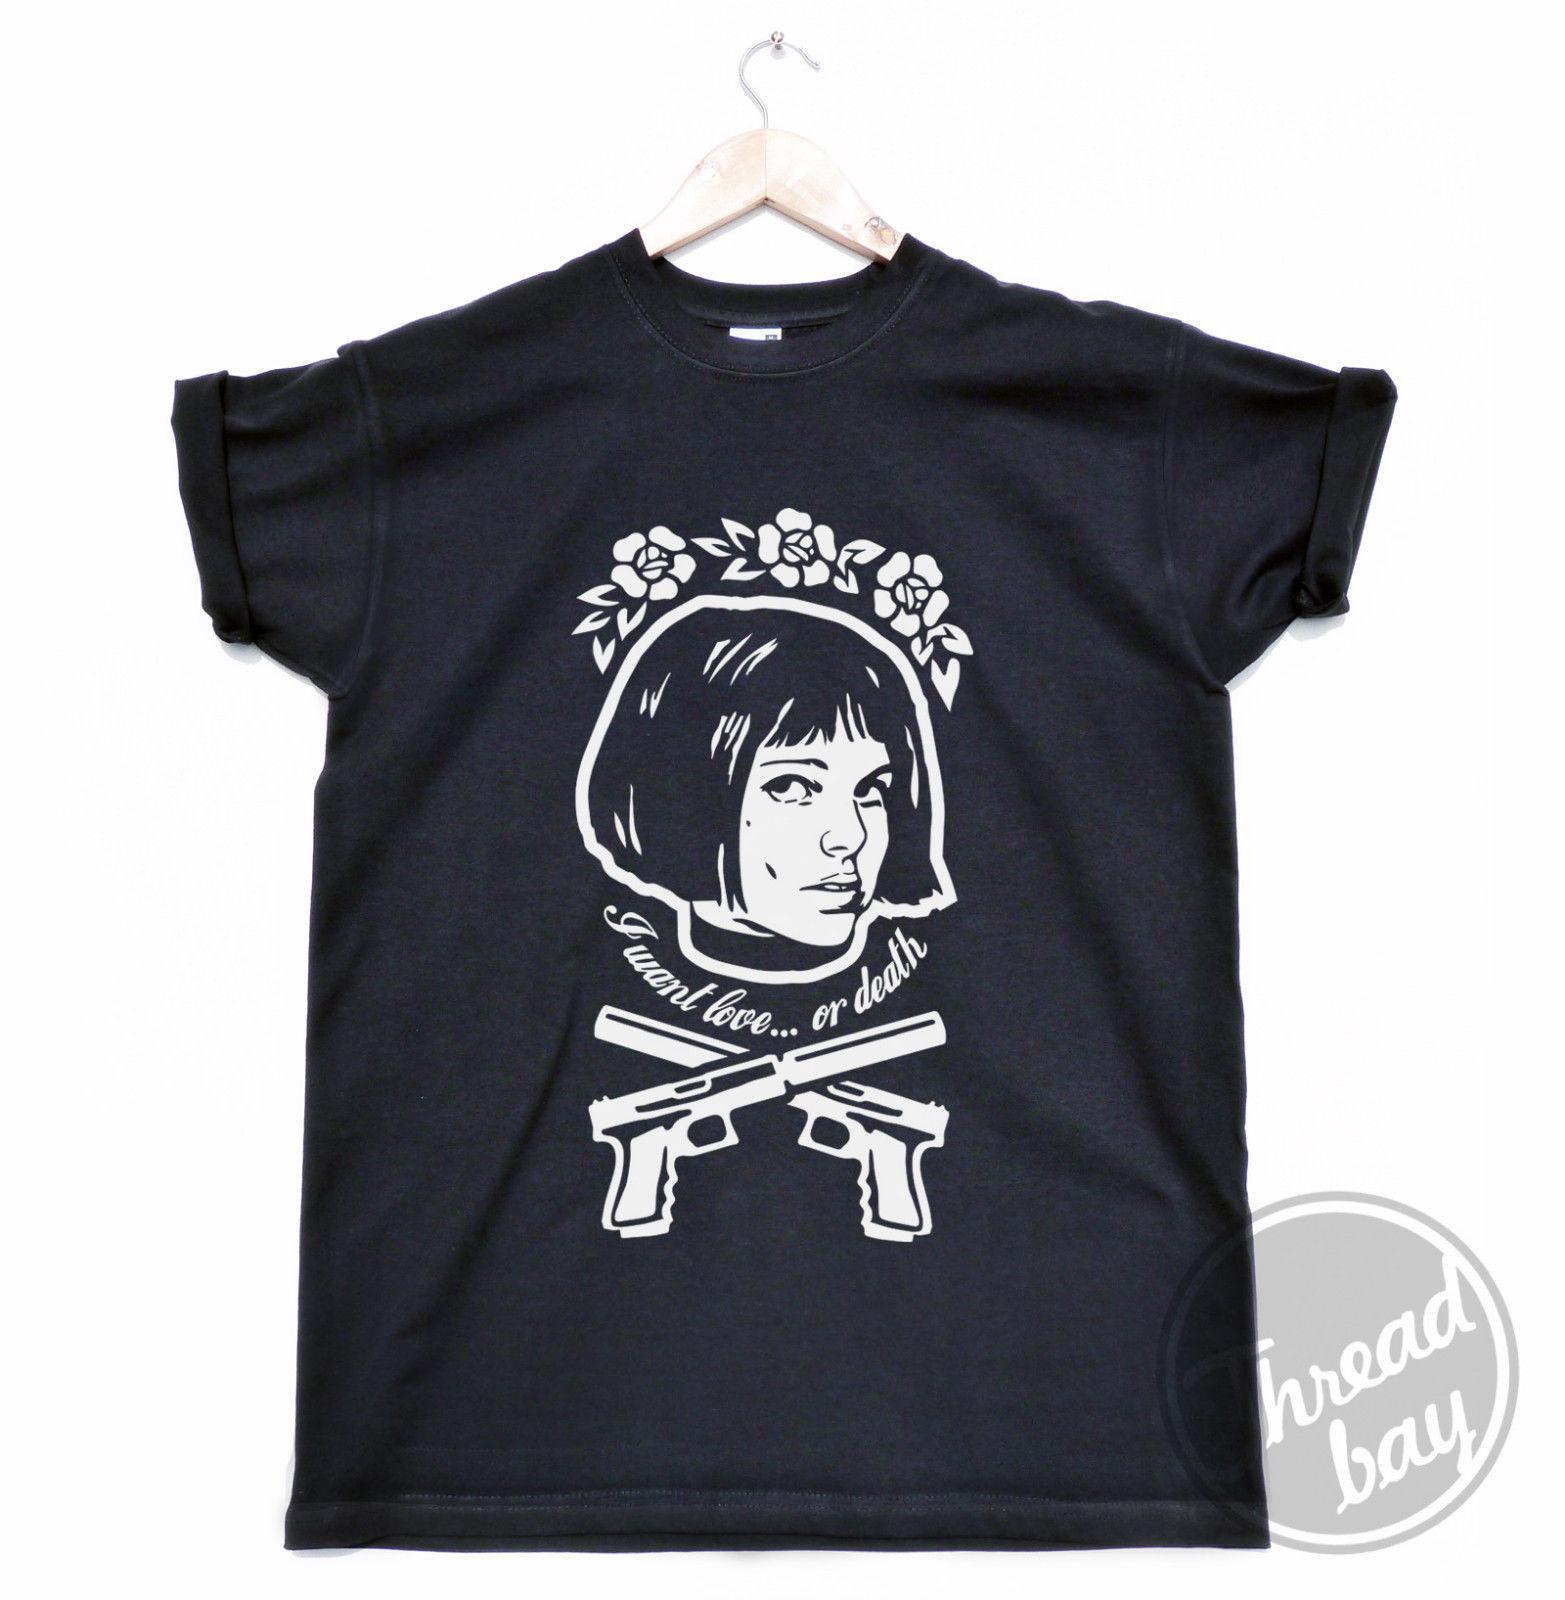 ef42f997 Leon The Professional T SHIRT Natalie Portman Mathilda Movie Film MENS CUT  Funny Unisex Casual Tshirt Shirts T Funky T Shirts For Women From  Thebestore, ...